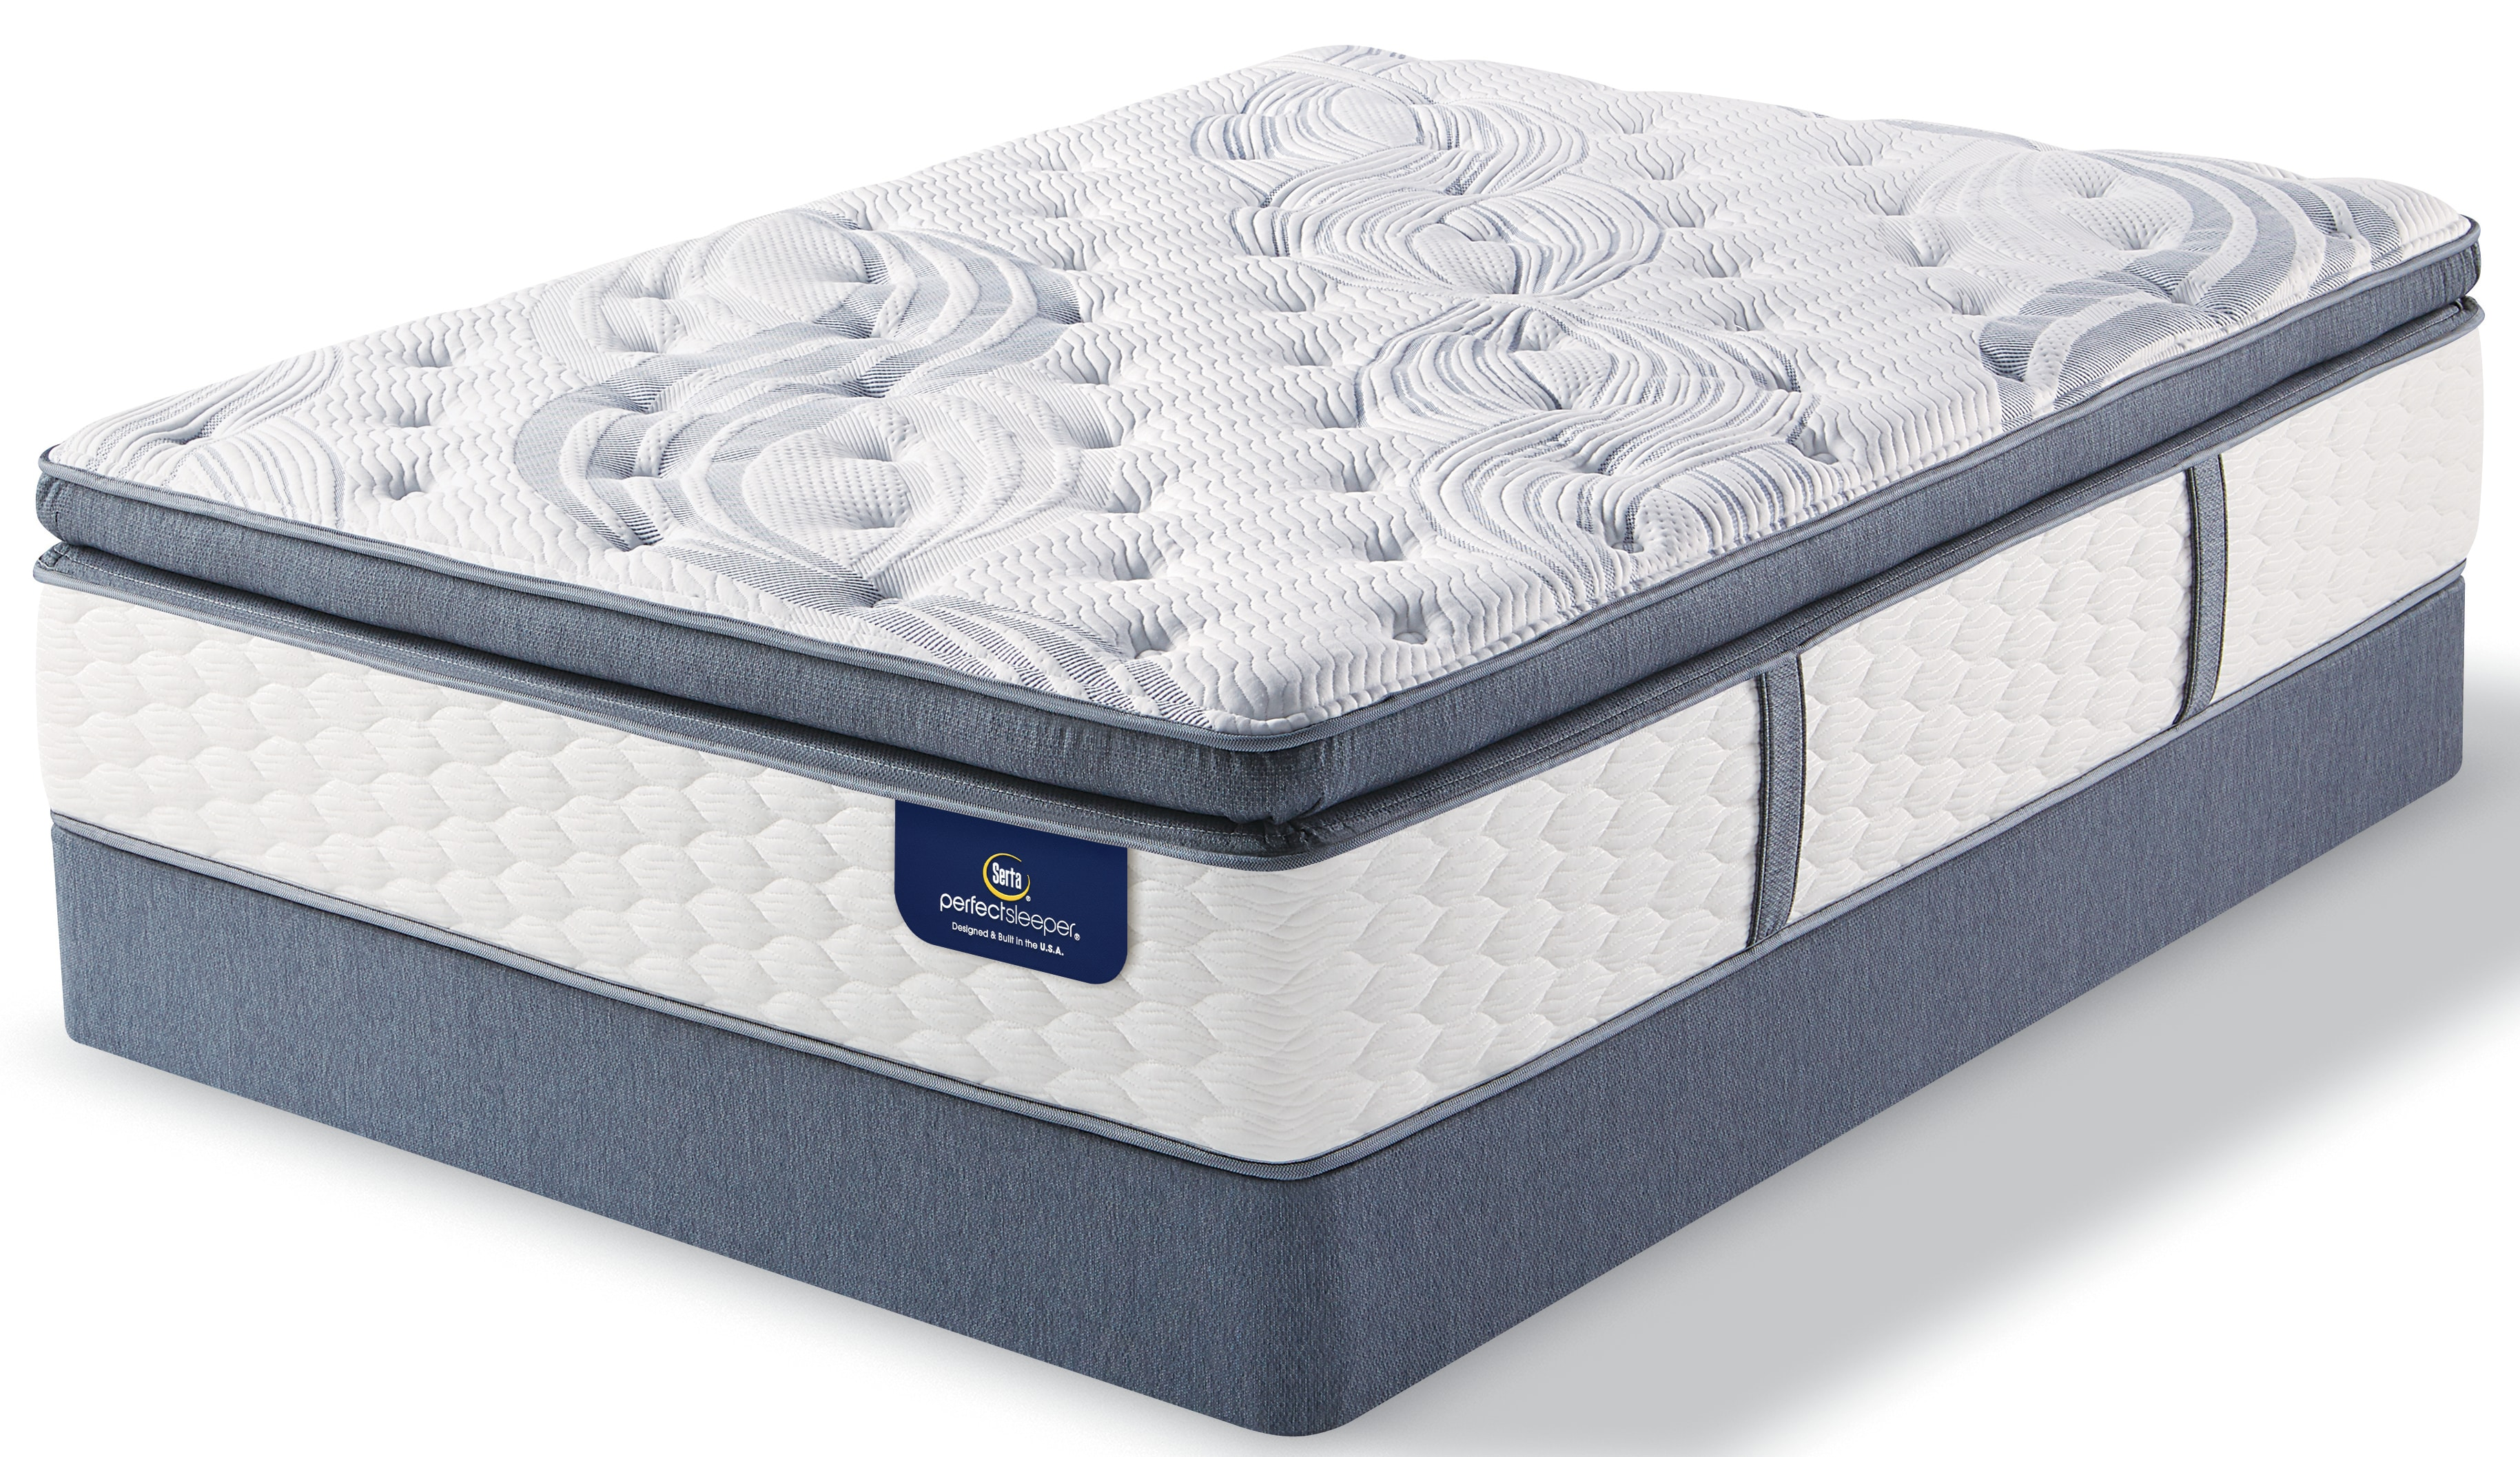 Luxury Perfect Sleeper Super Pillowtop Twin XL Mattress and Boxspring